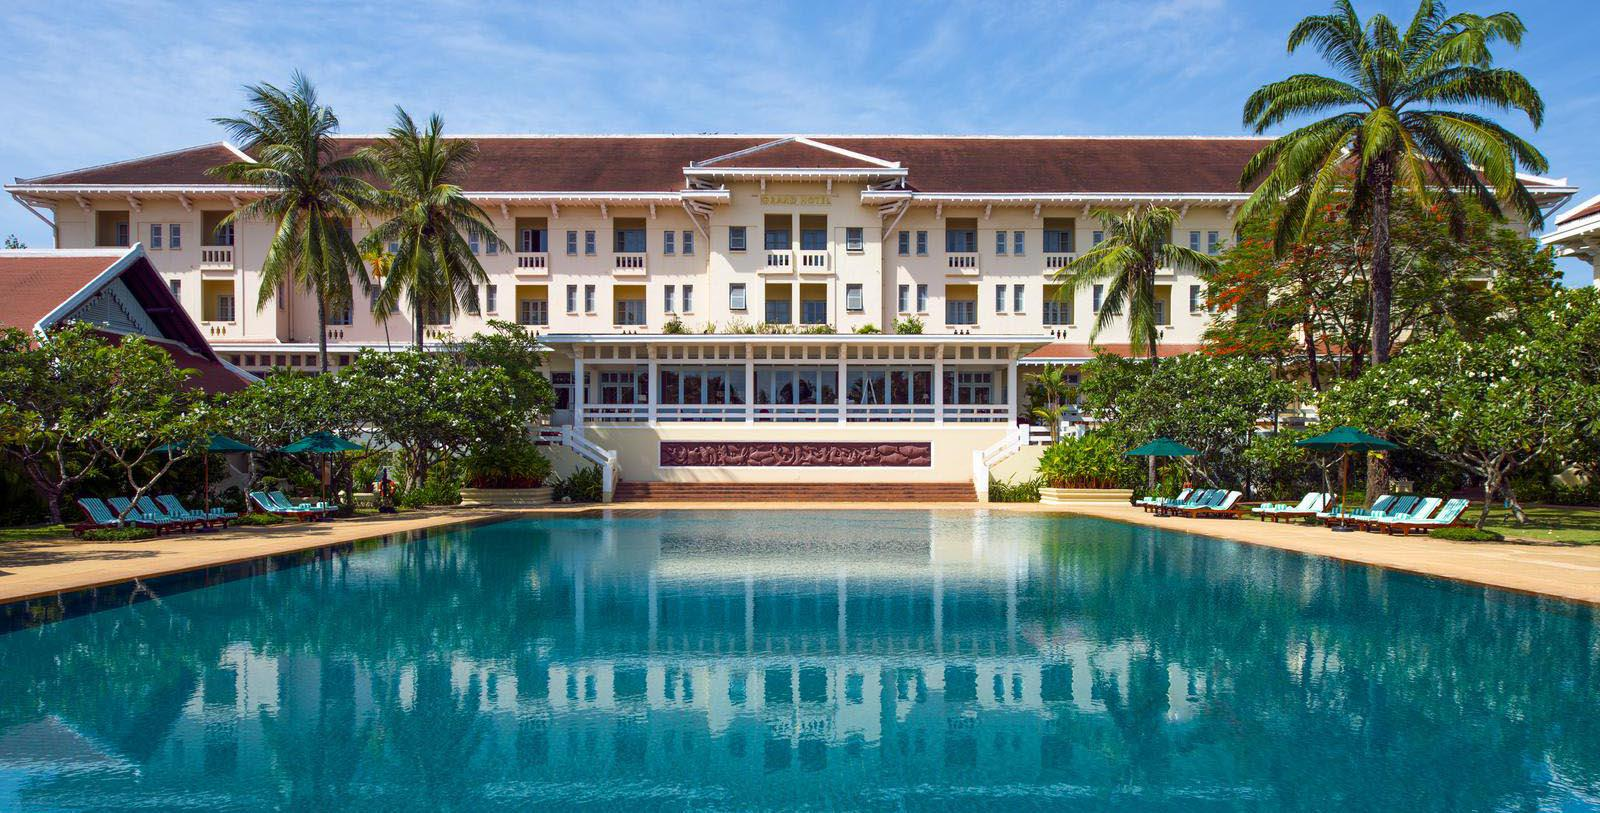 Image of Event Space Raffles Grand Hotel D'Angkor, 1932, Member of Historic Hotels Worldwide, in Siem Reap, Cambodia, Experience